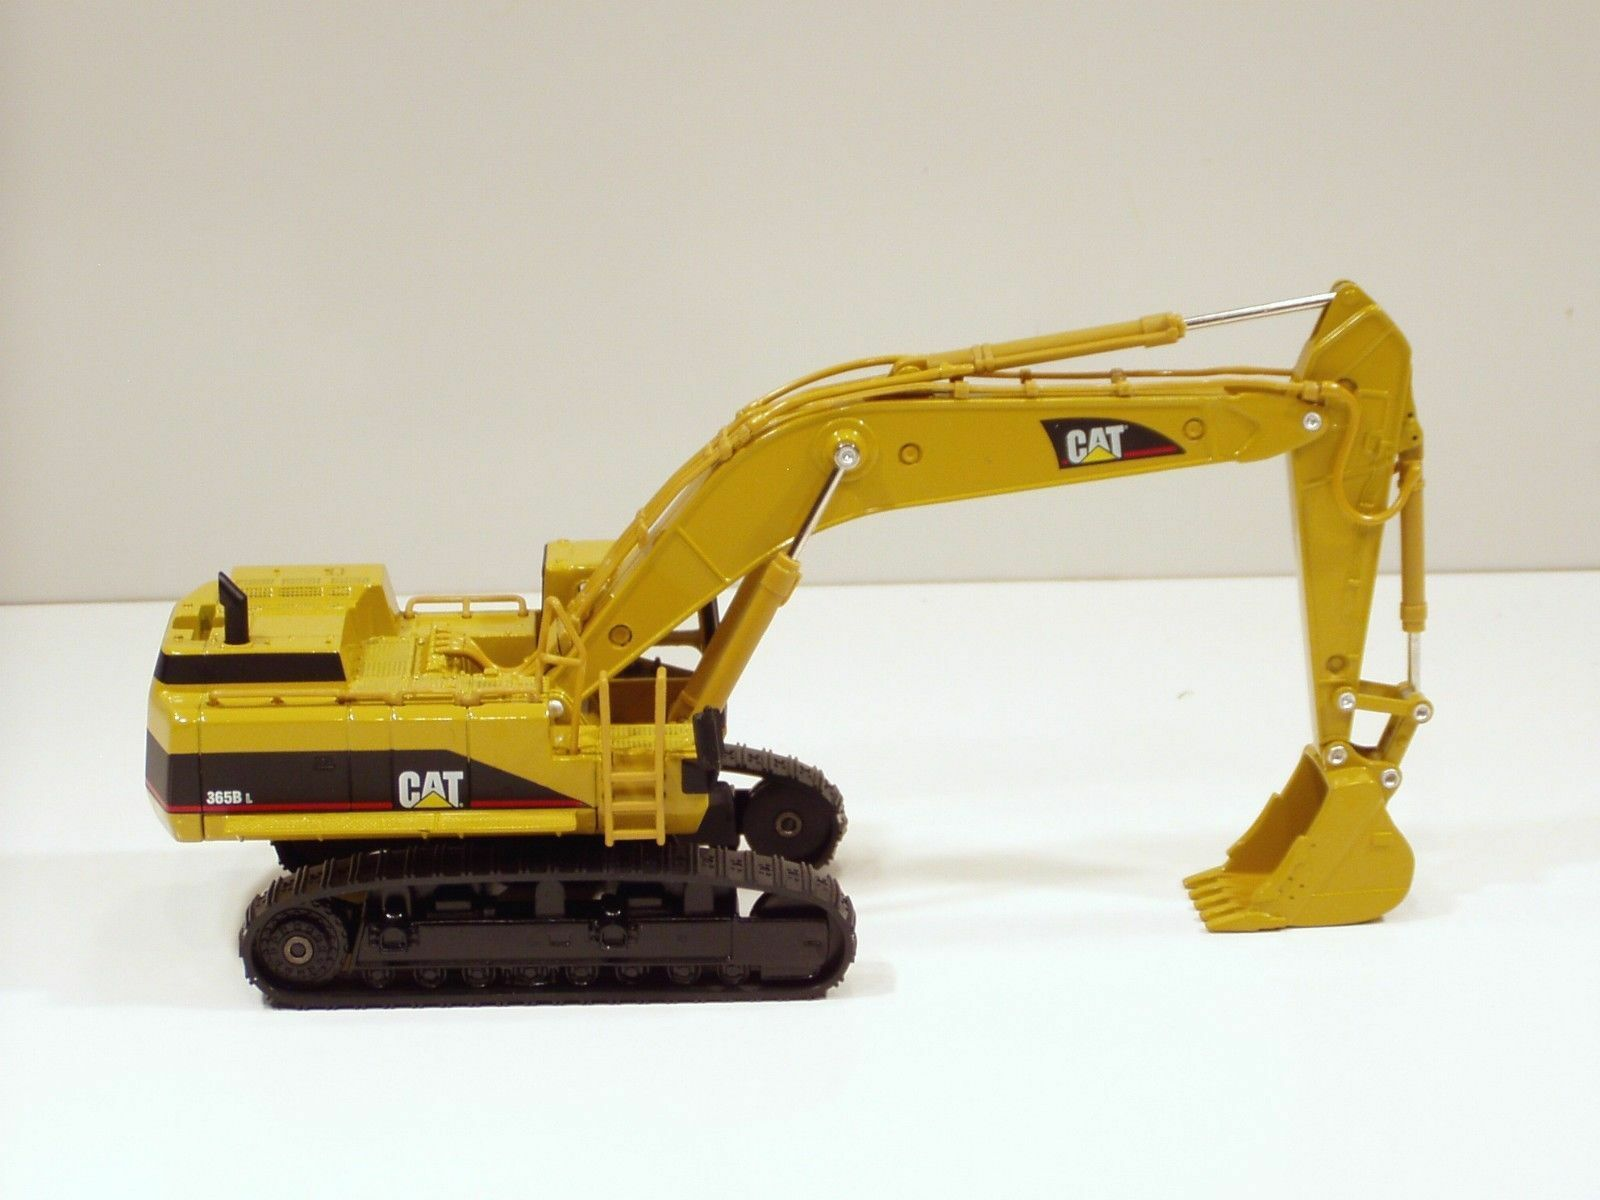 Caterpillar - Cat 365B L Series II Excavator - 1 50 - Norscot  55058 - NIB